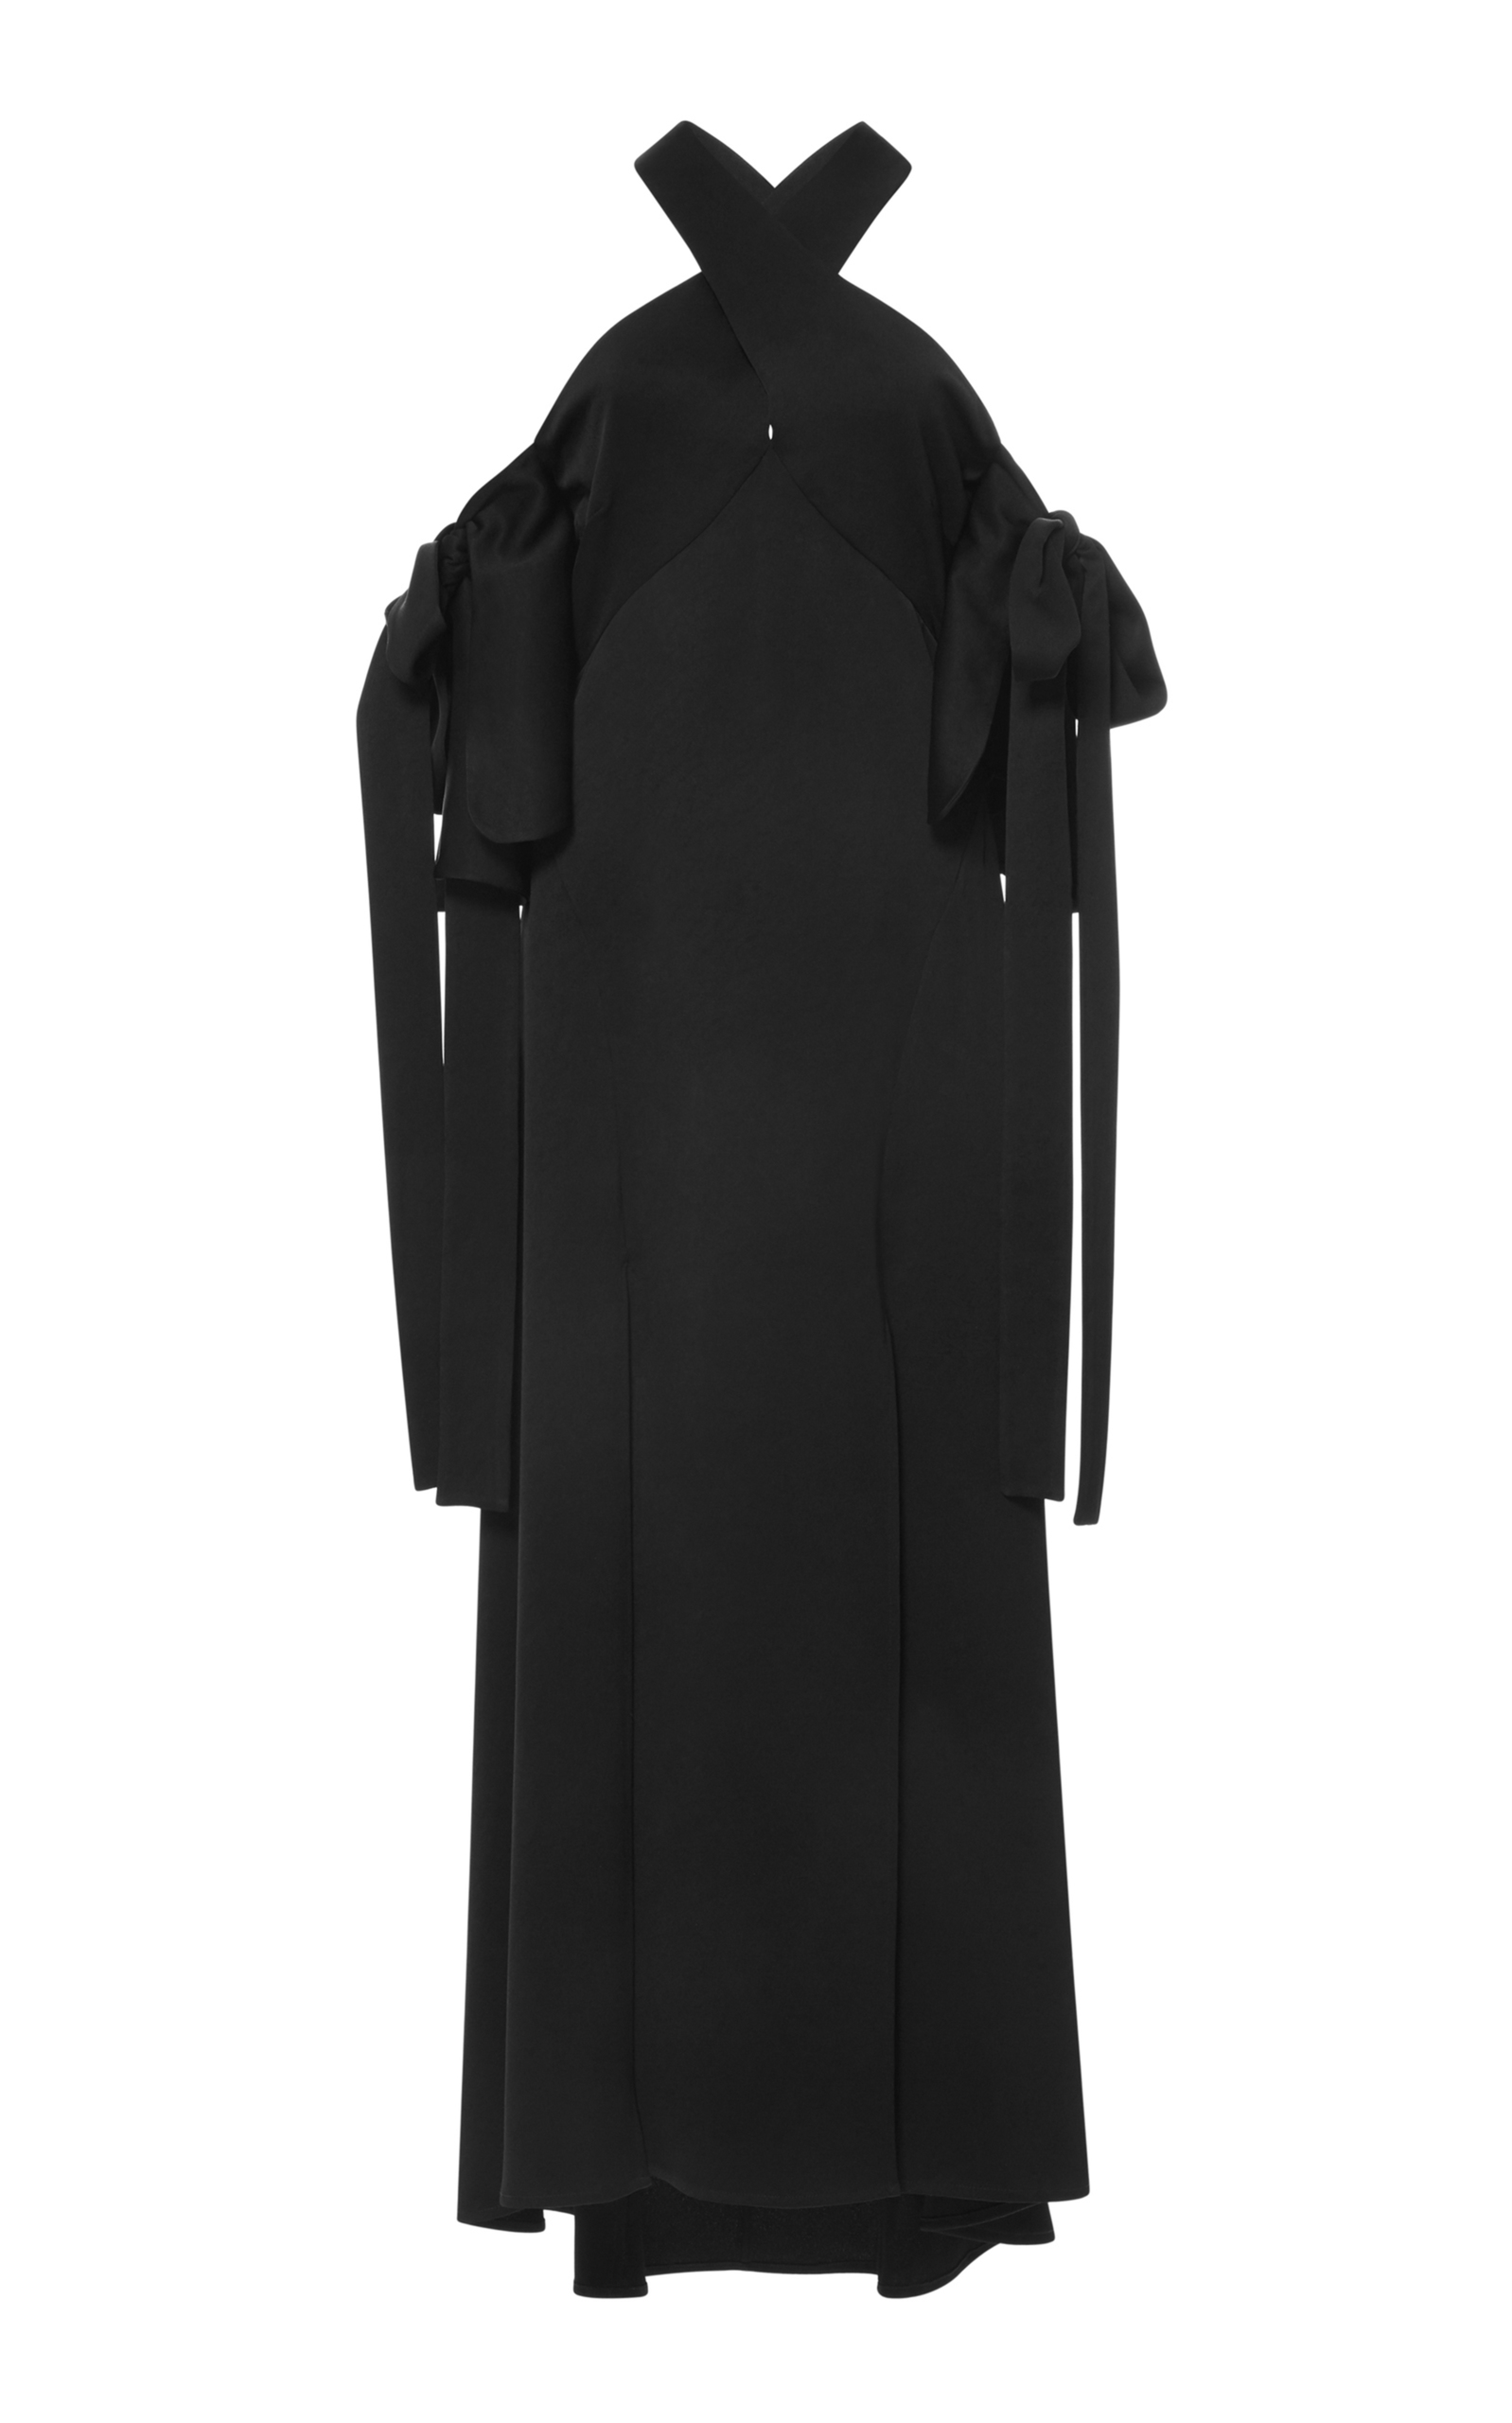 Purchase Ellery Woman Lace-up Crepe Midi Dress Black Size 12 Ellery Clearance Enjoy Clearance Store Online Manchester For Sale Sale Finishline 0WPMobL